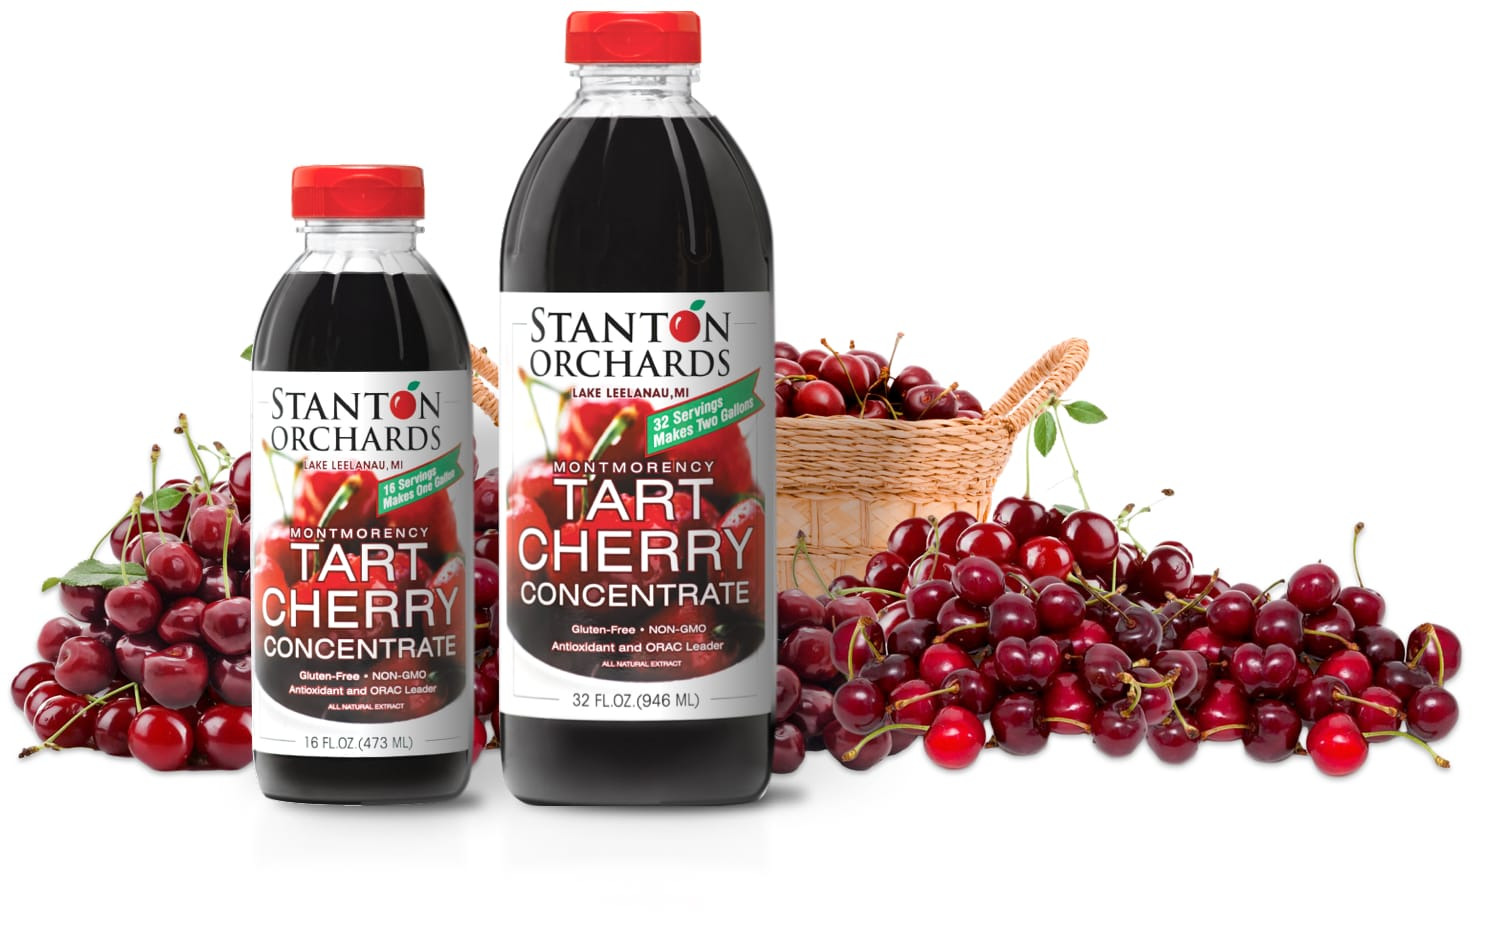 16 oz and 32 oz bottles of Stanton Orchards' tart cherry concentrate with basket of Montmorency cherries